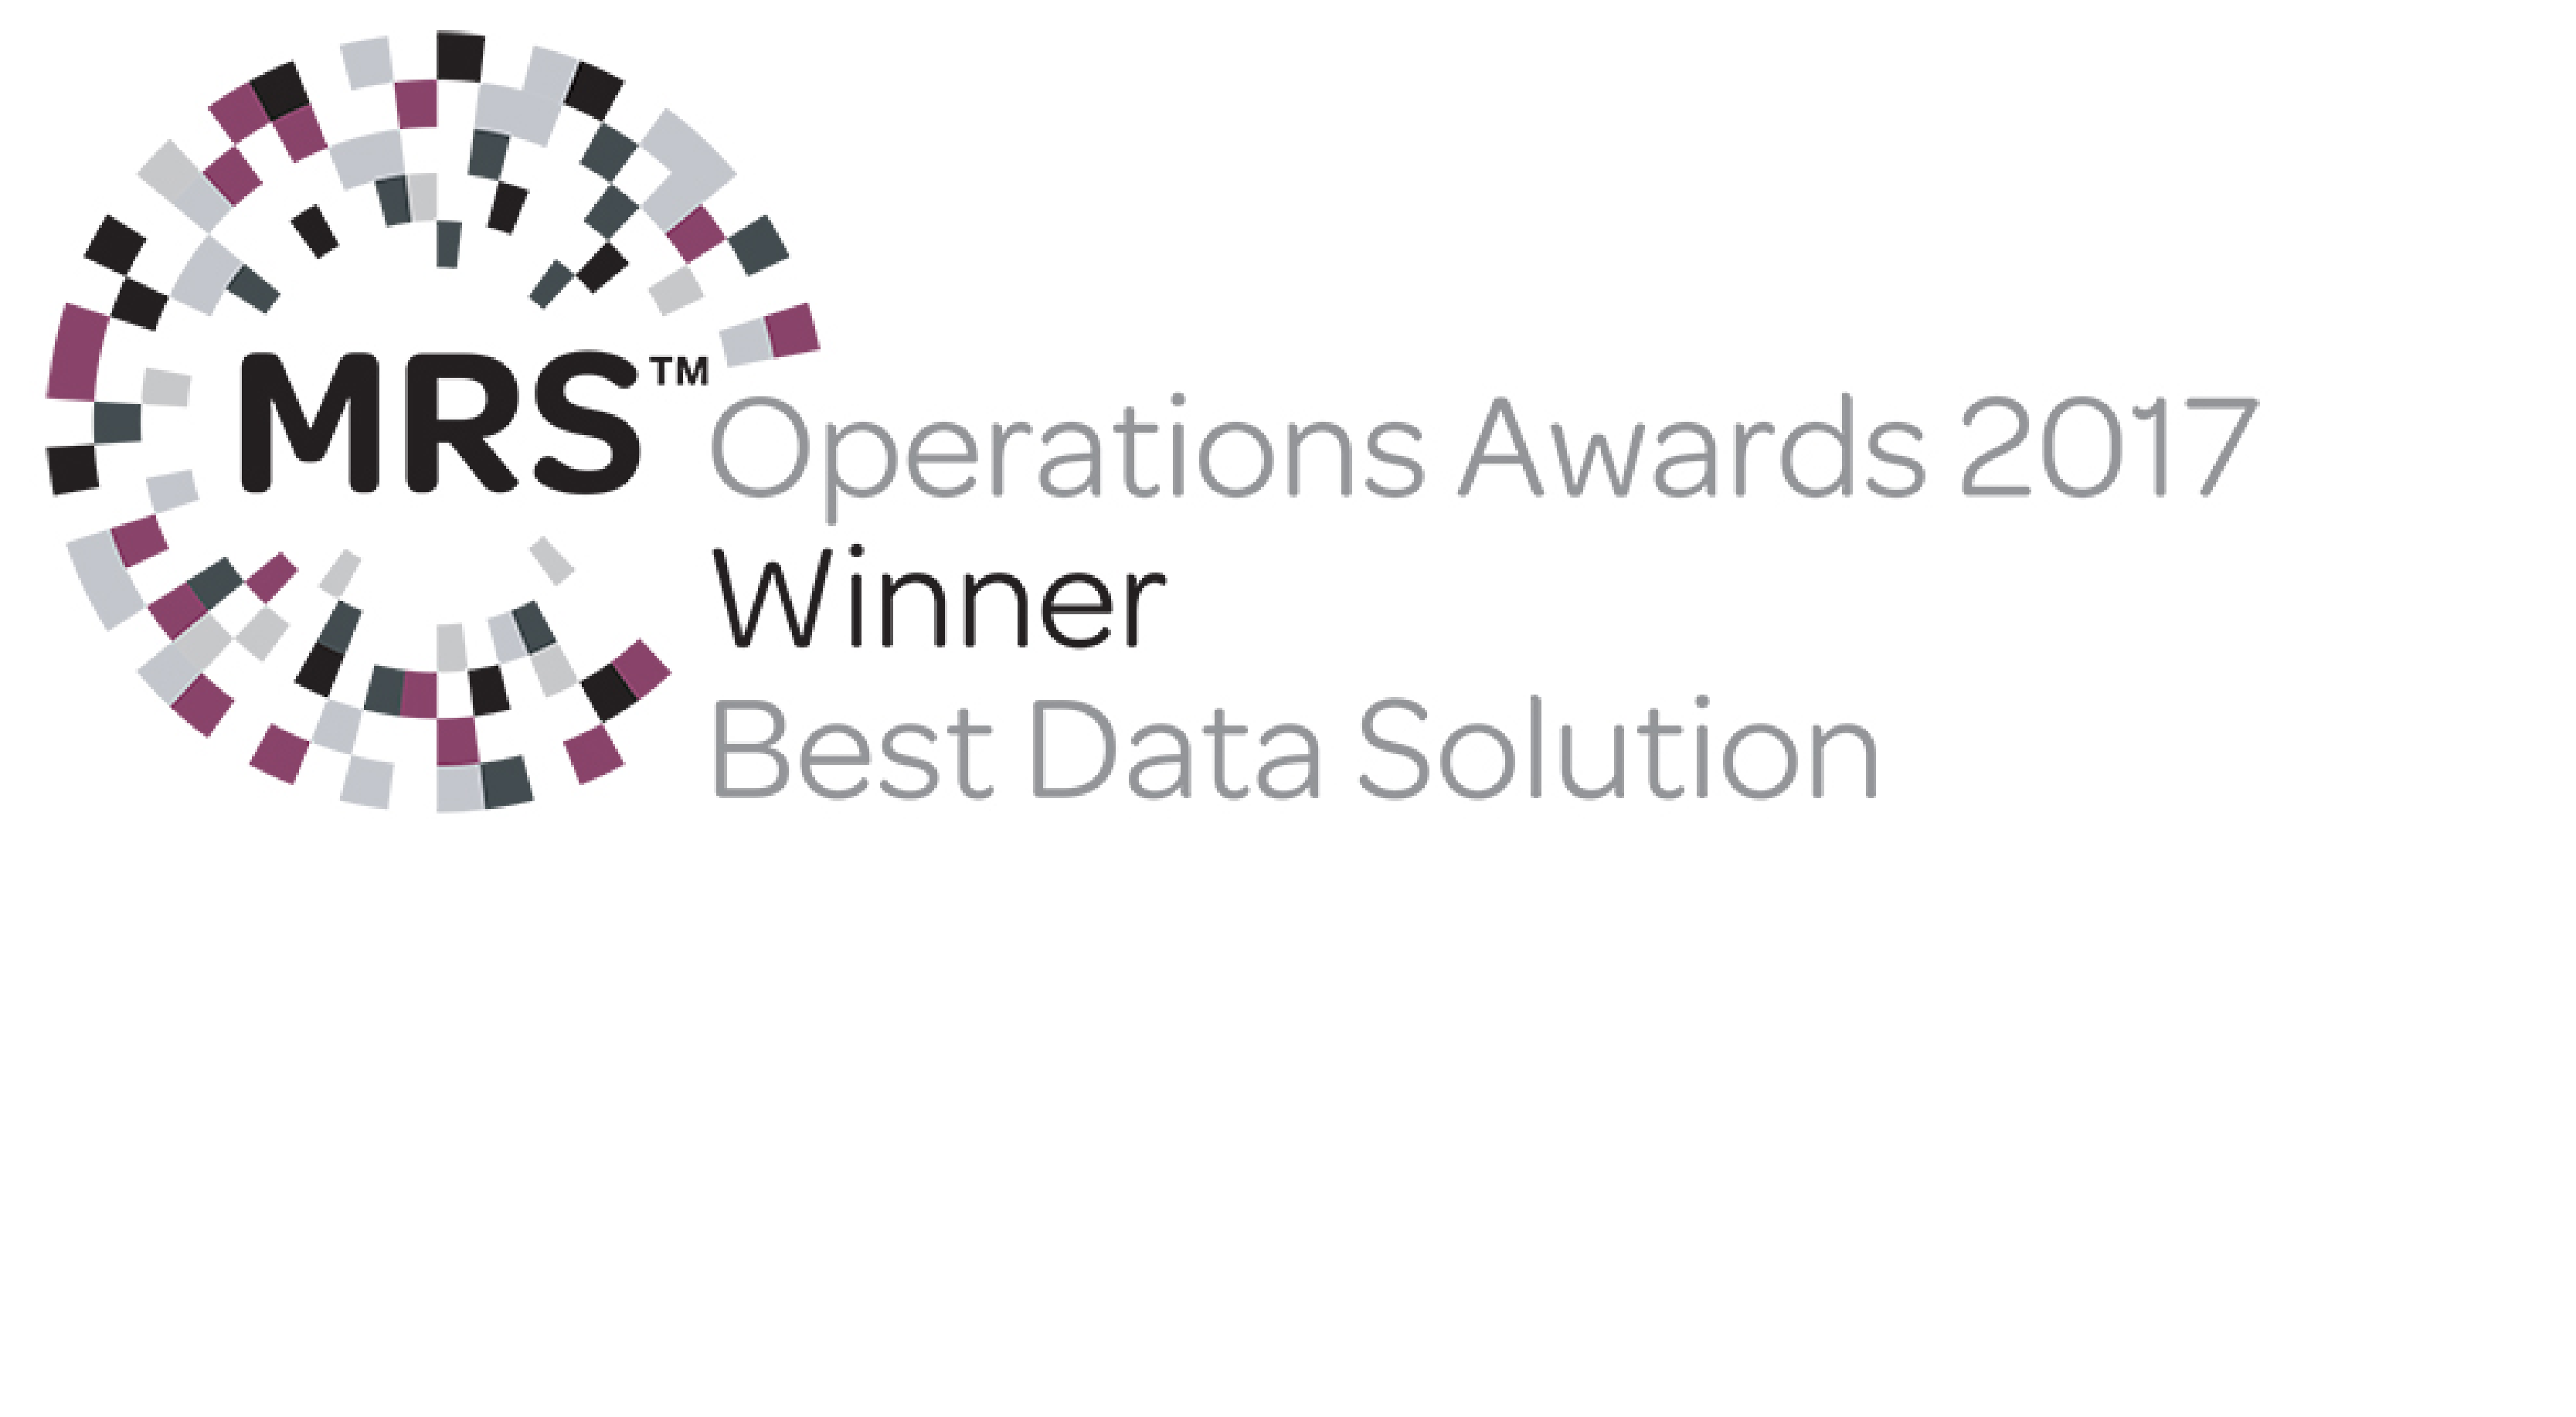 400px_Best Data Solution, 2017